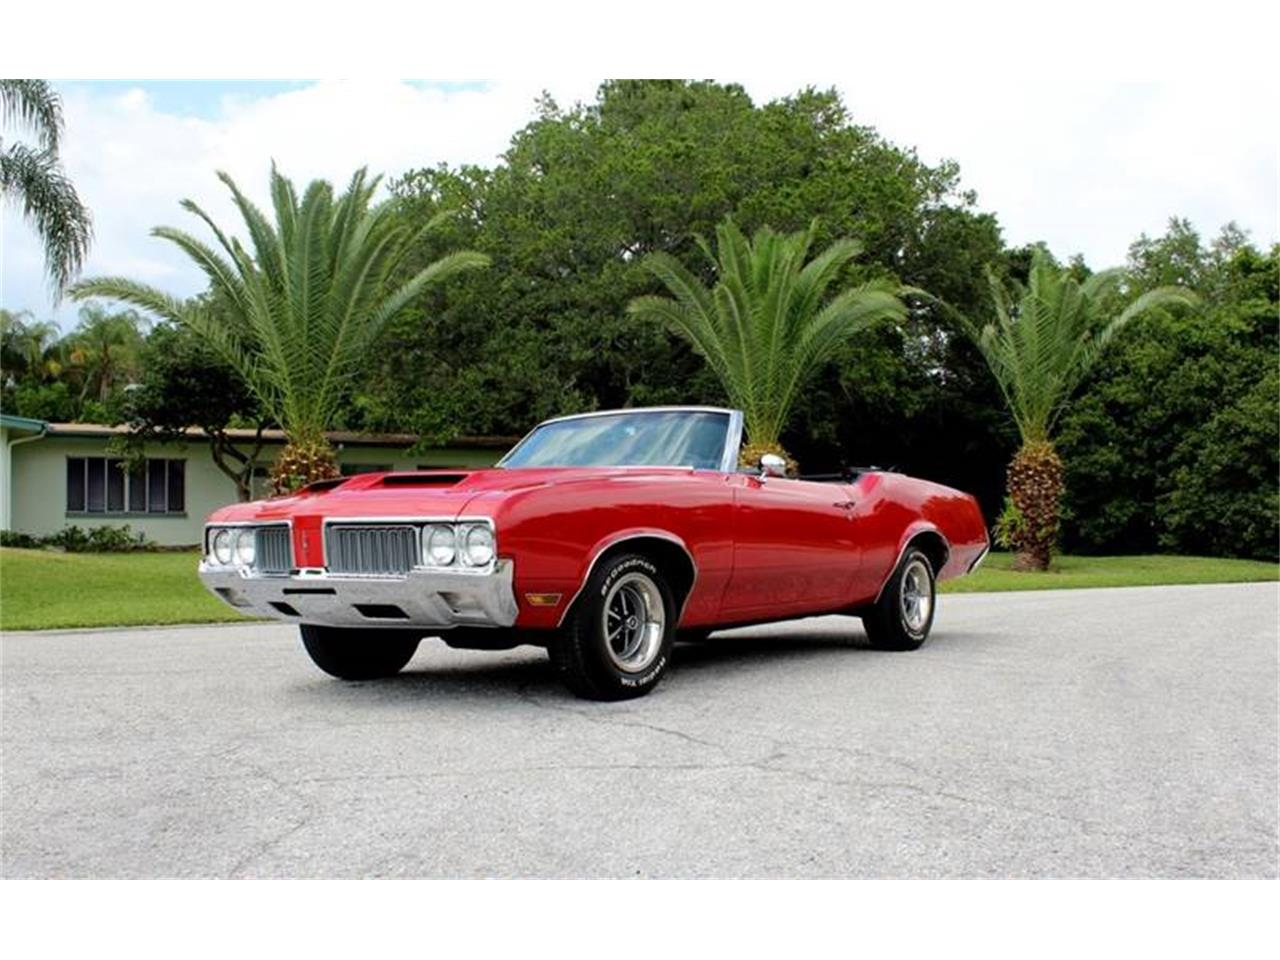 Large Picture of Classic 1970 Cutlass located in Florida - $32,900.00 Offered by PJ's Auto World - Q478